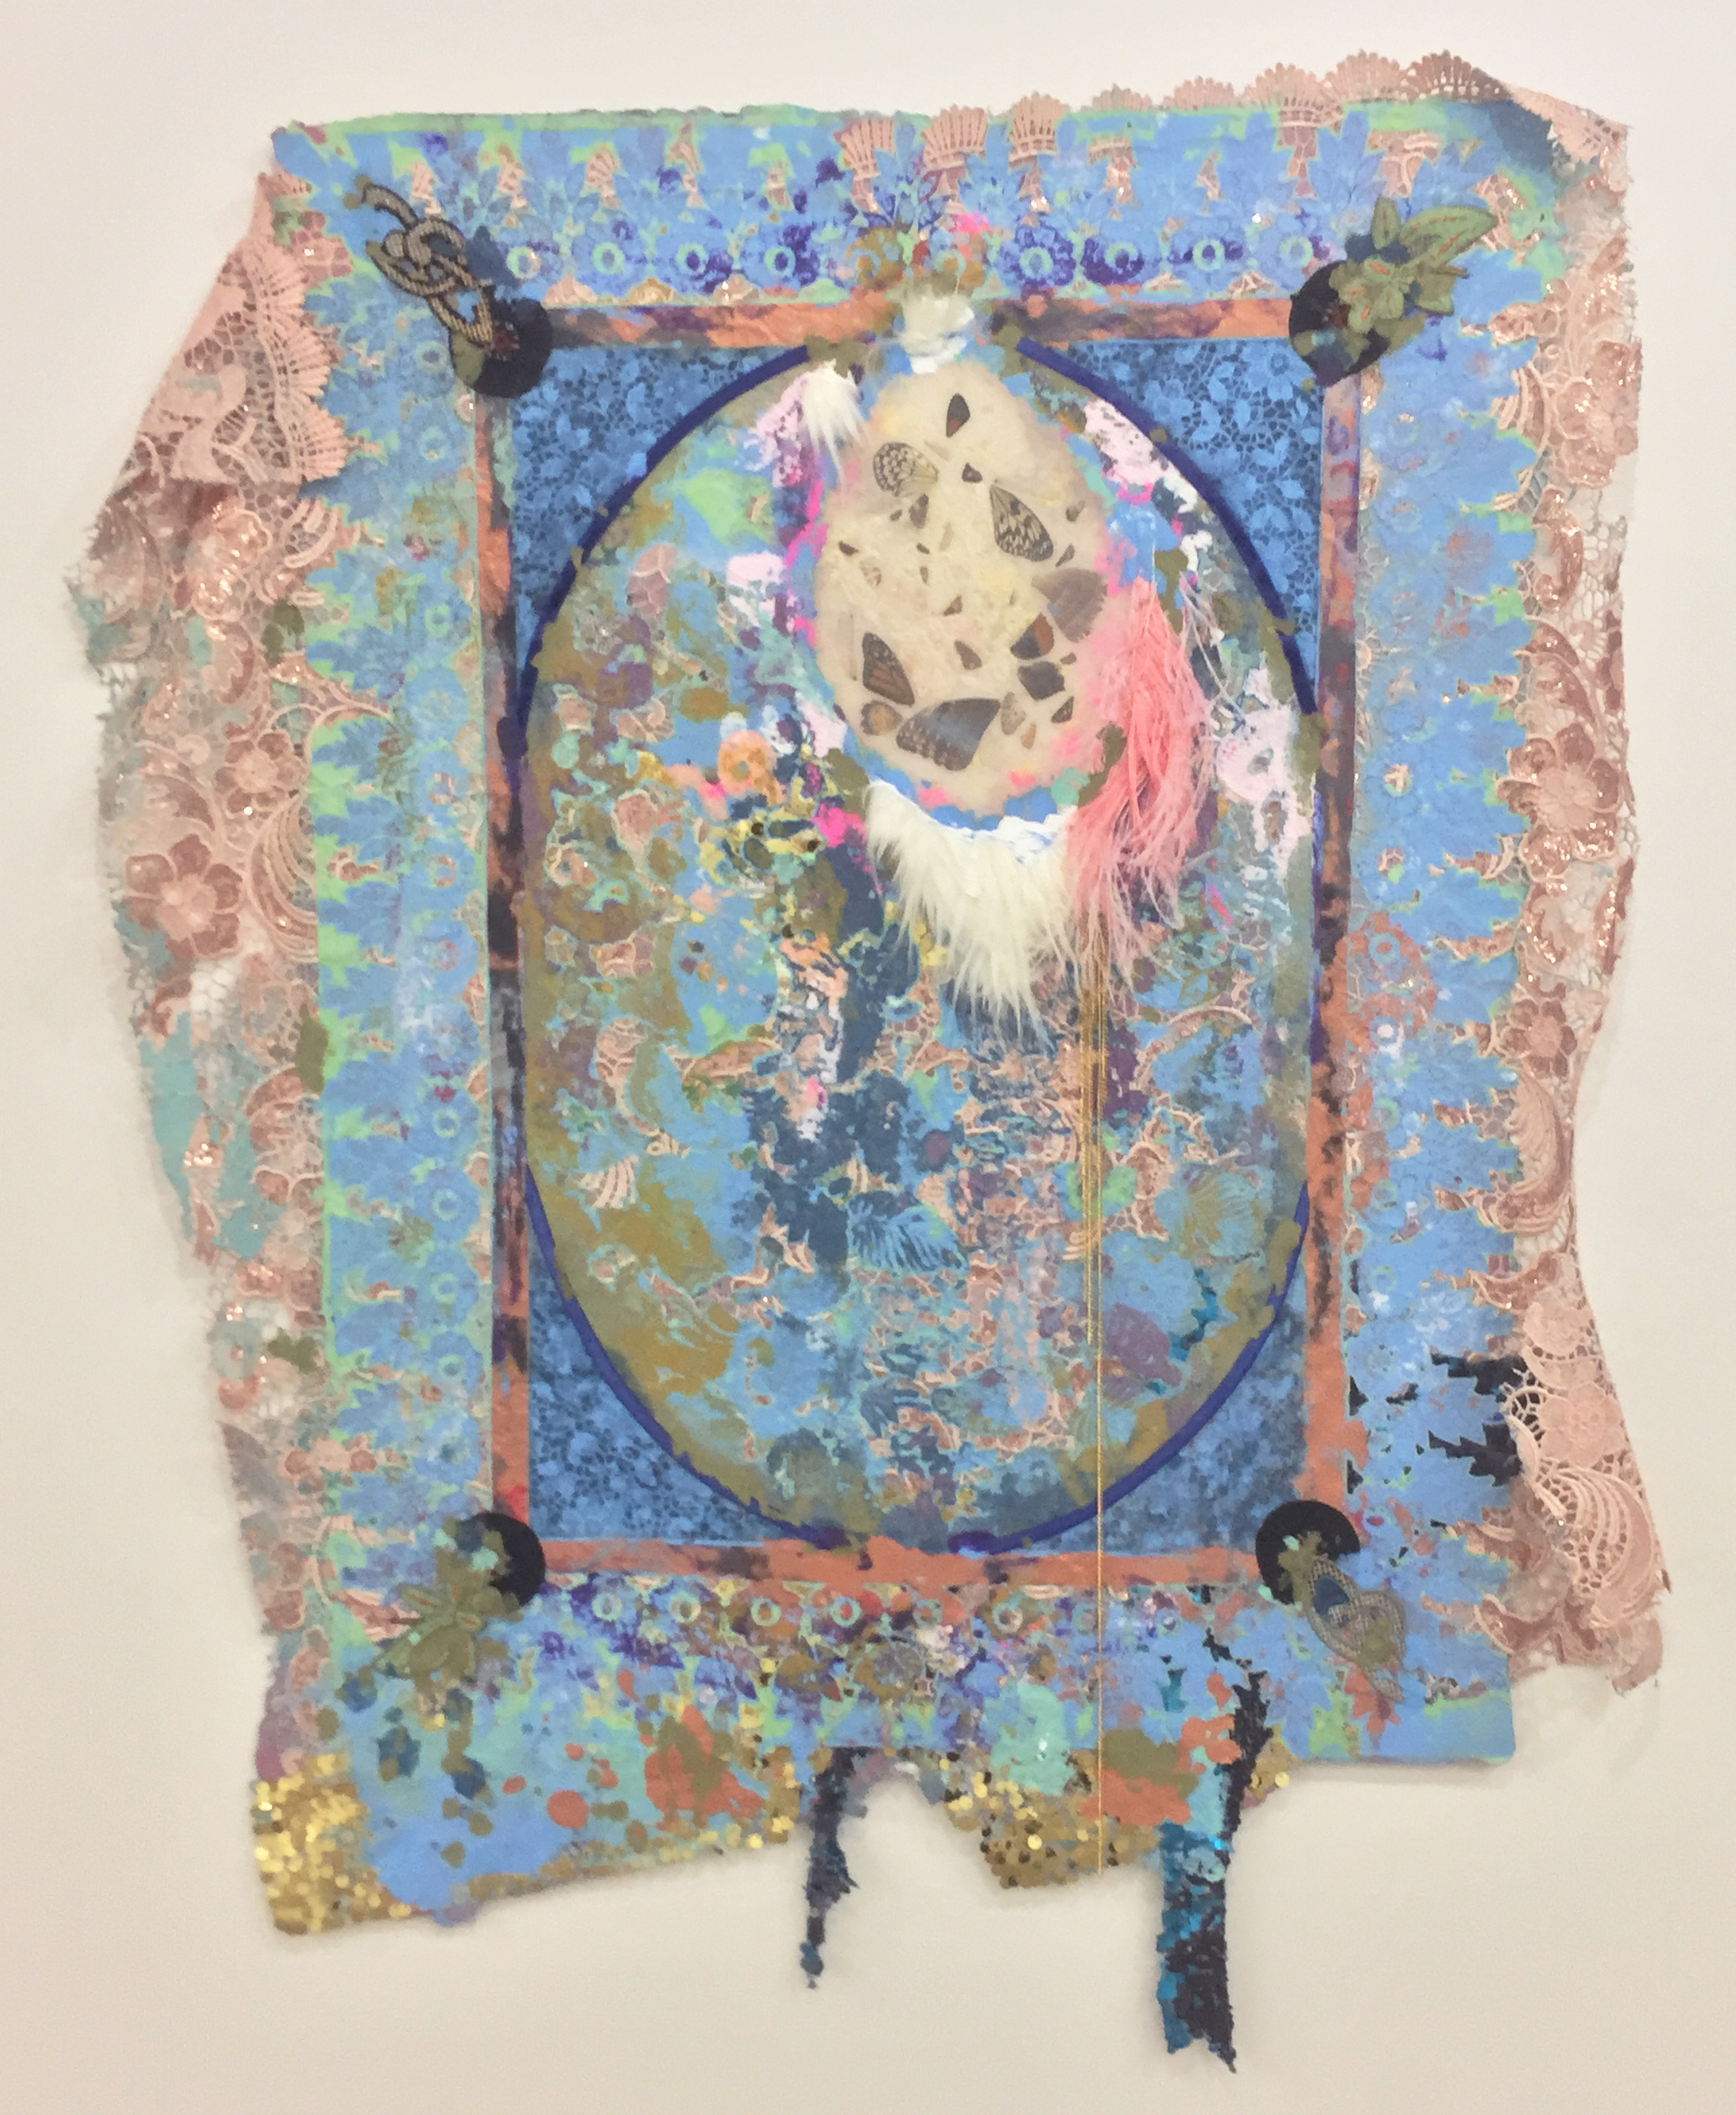 Lina Puerta, Untitled (Turquoise/Tapestries Series), 2016